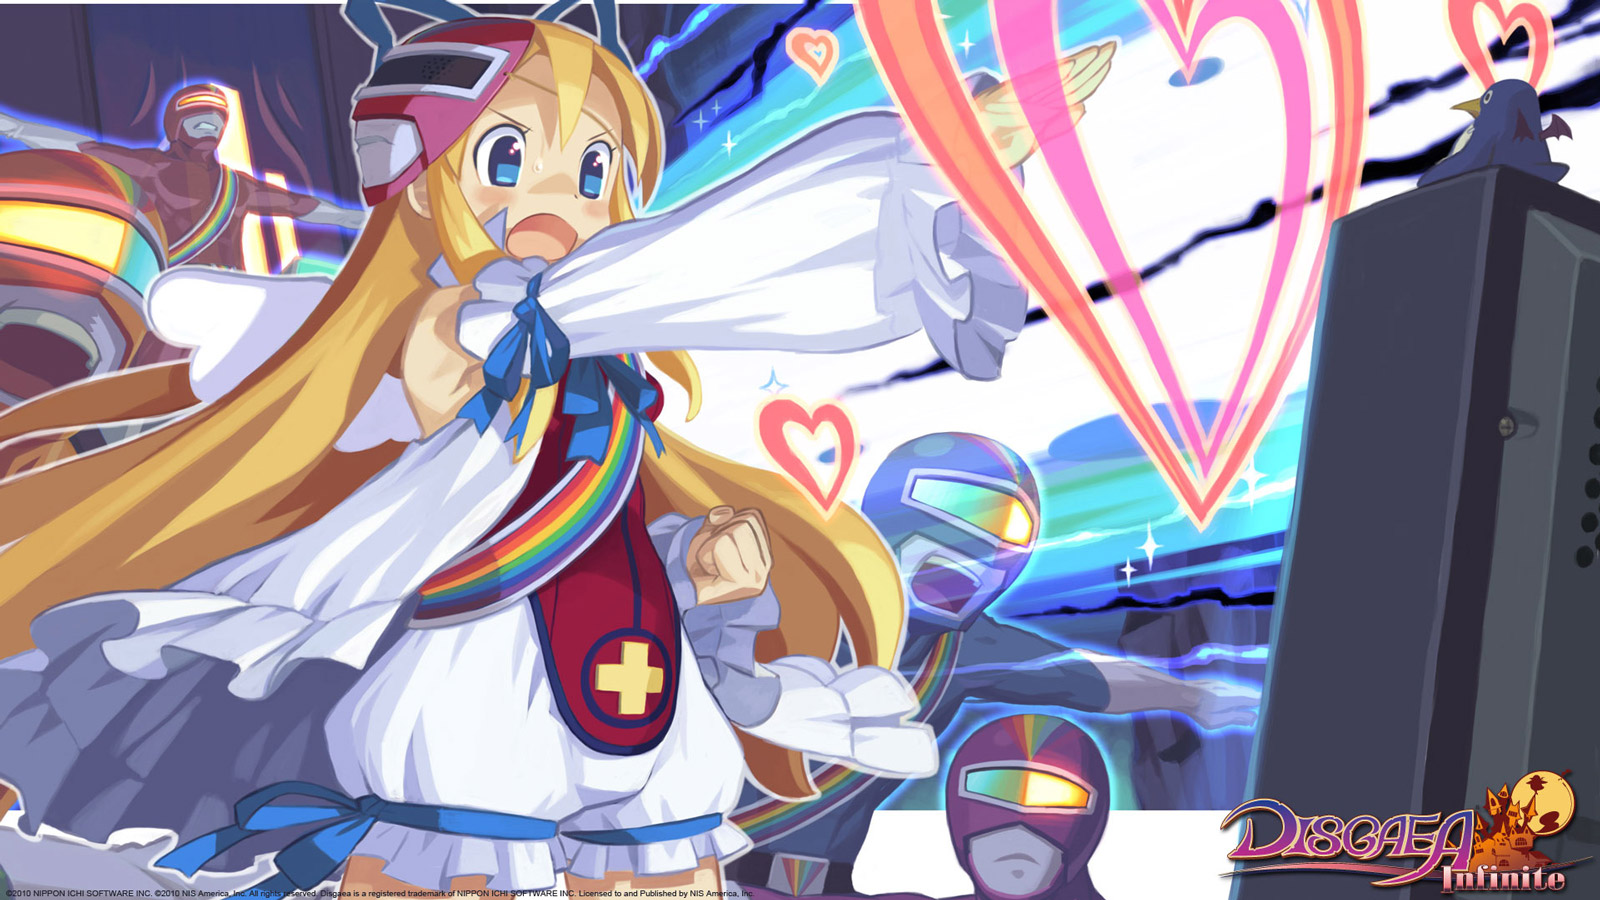 Free Disgaea Infinite Wallpaper in 1600x900